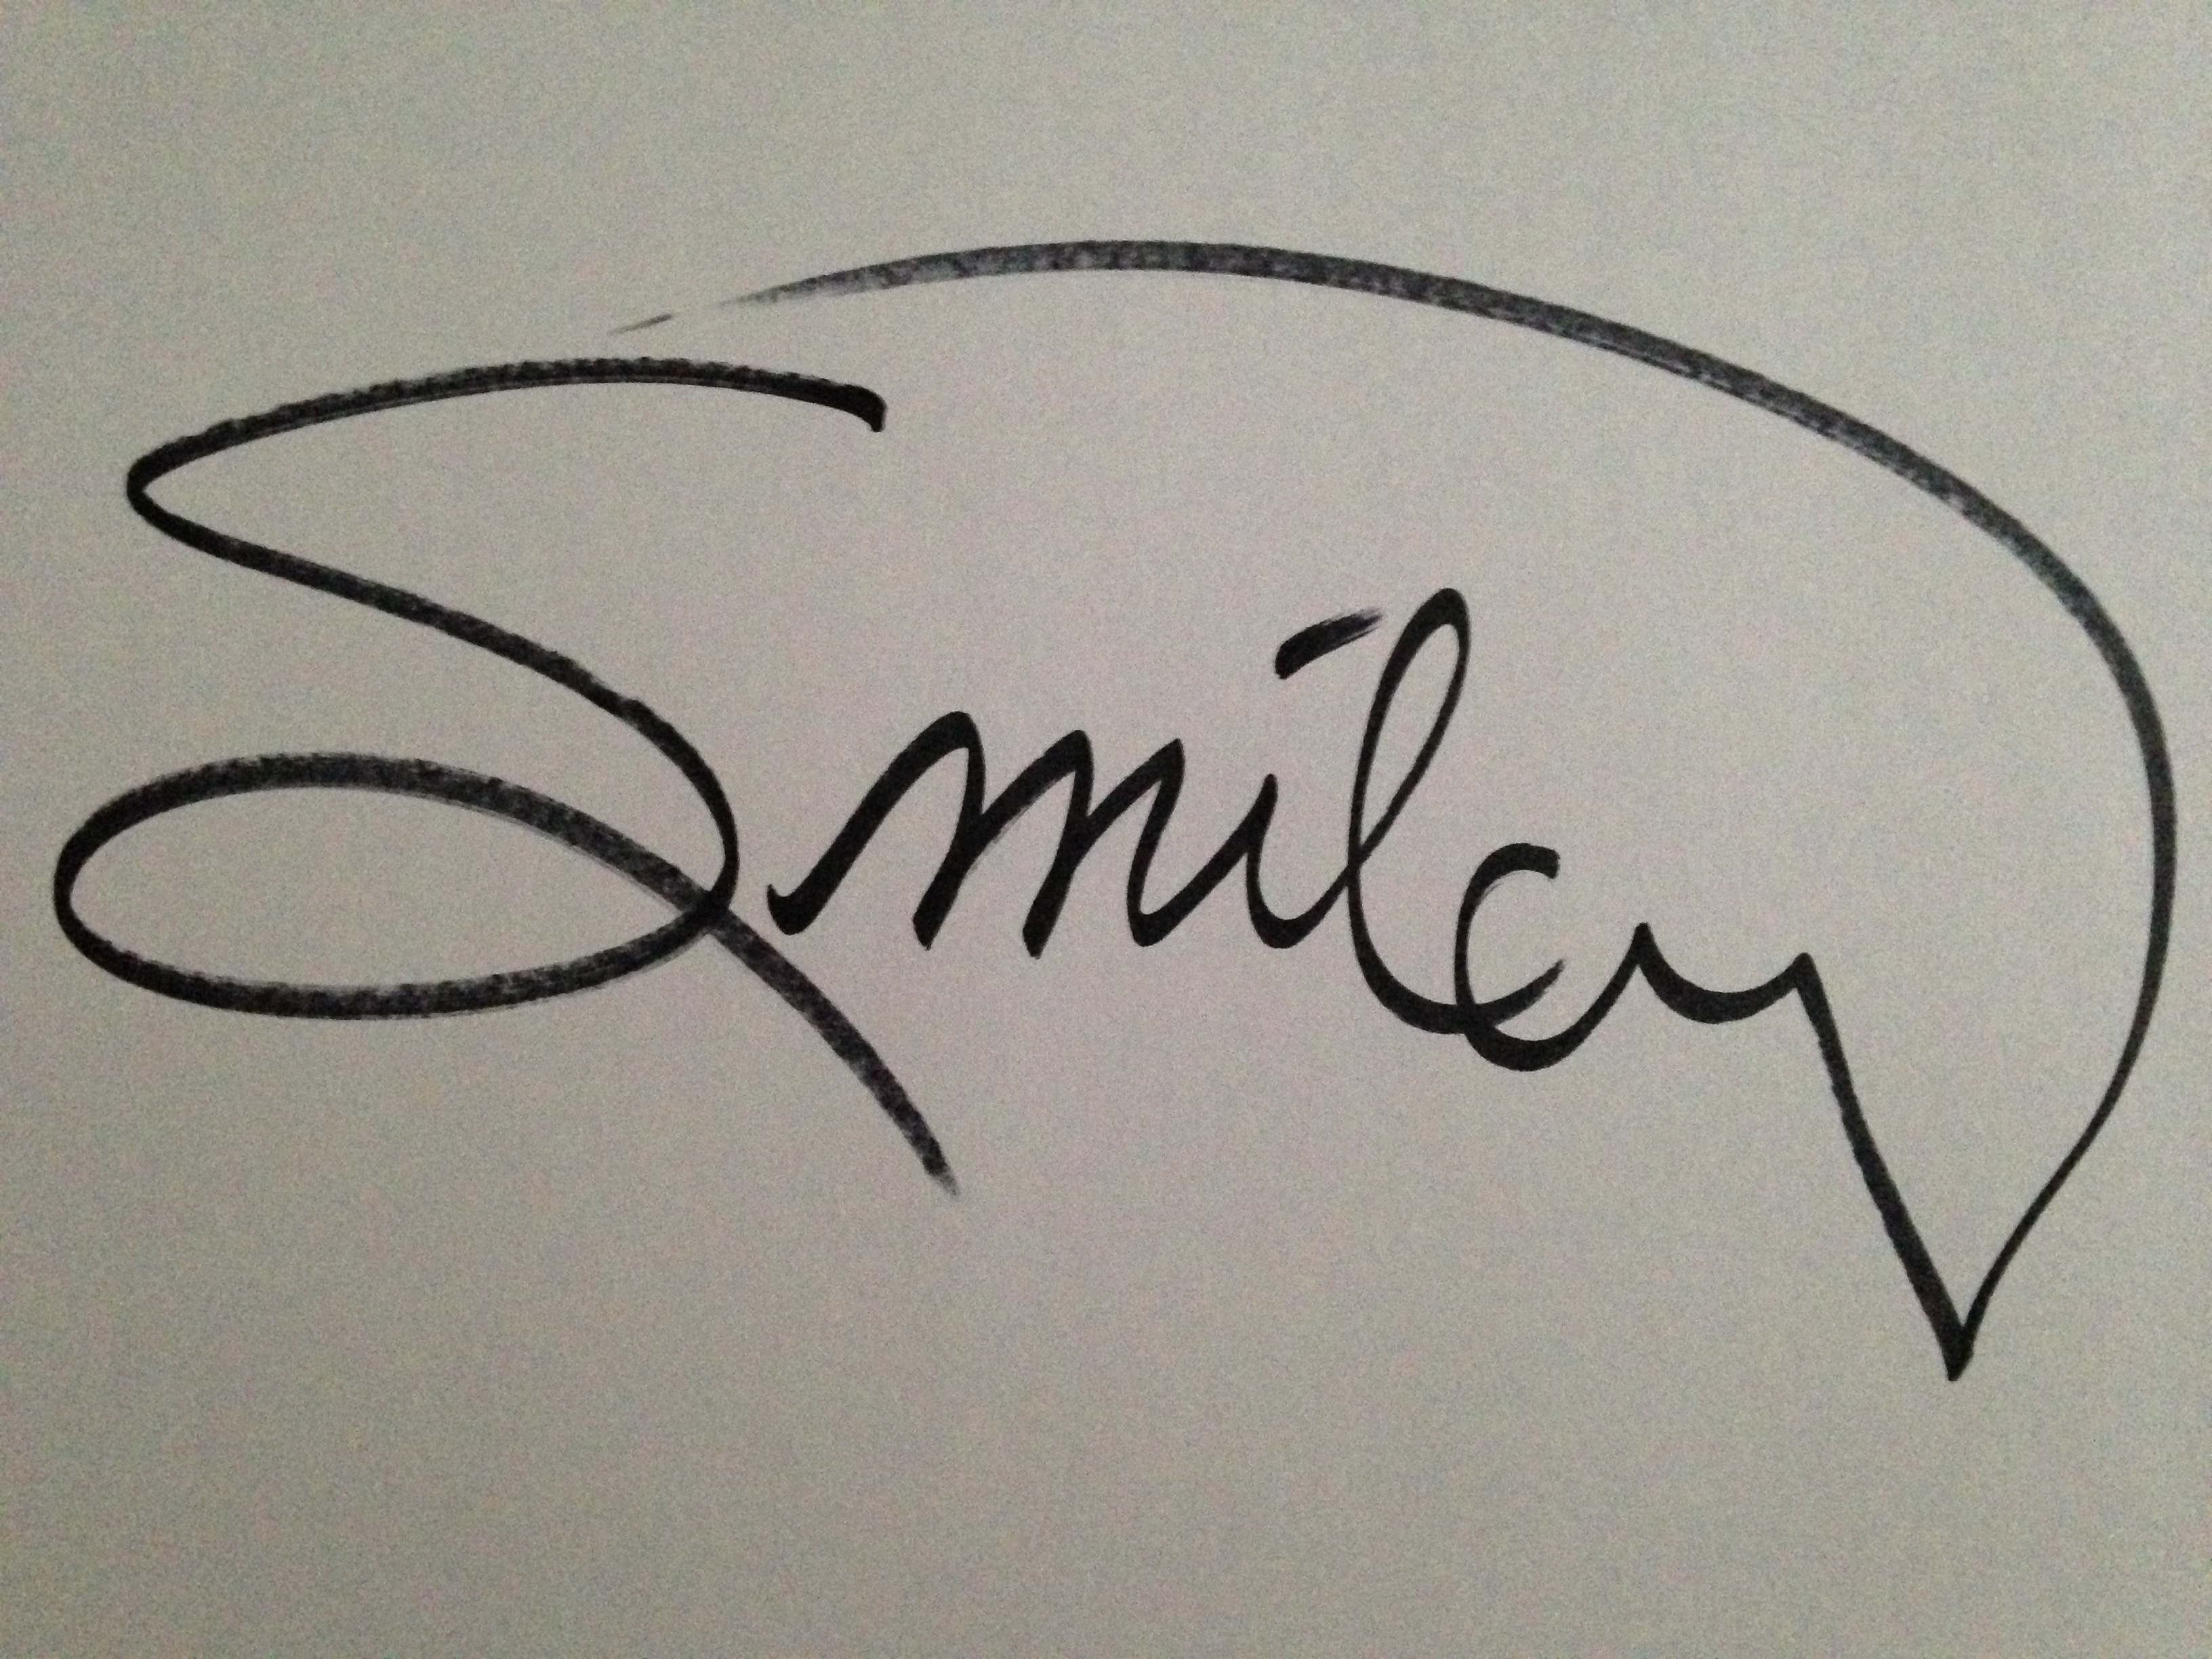 Scott Smiley's Signature